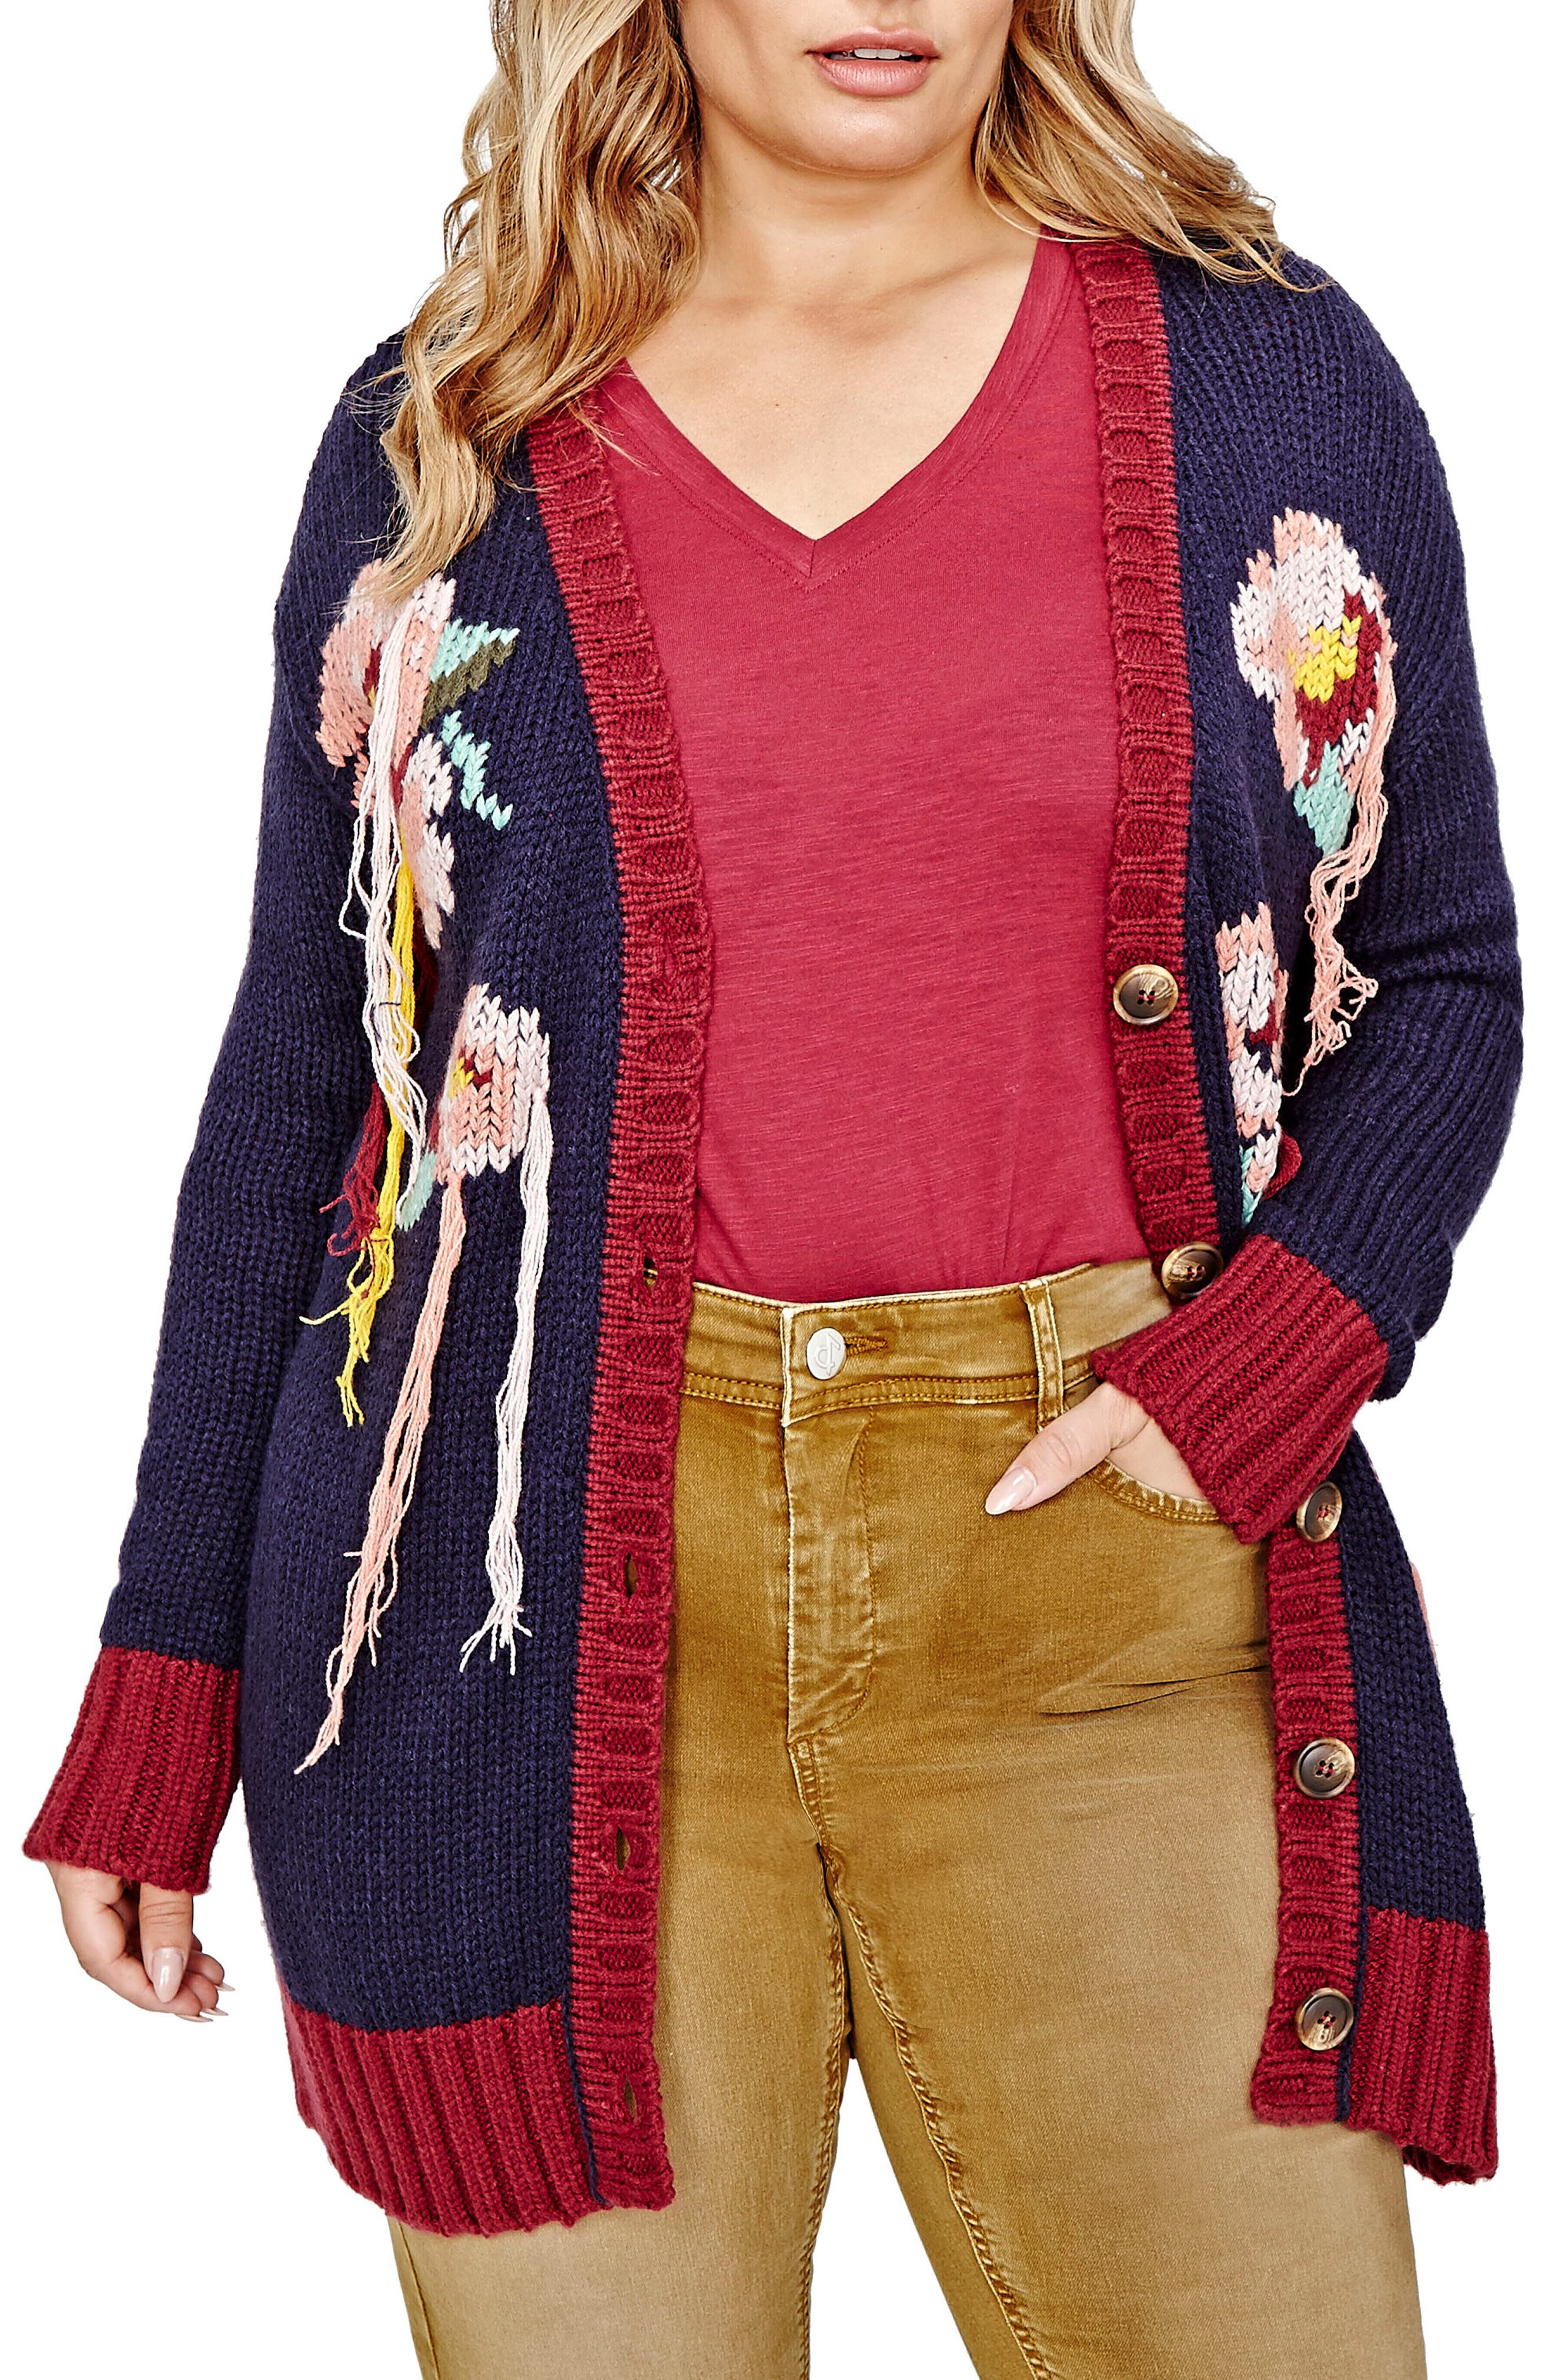 Alternate Image 1 Selected - ADDITION ELLE LOVE AND LEGEND Hand Embroidered Cardigan (Plus Size)